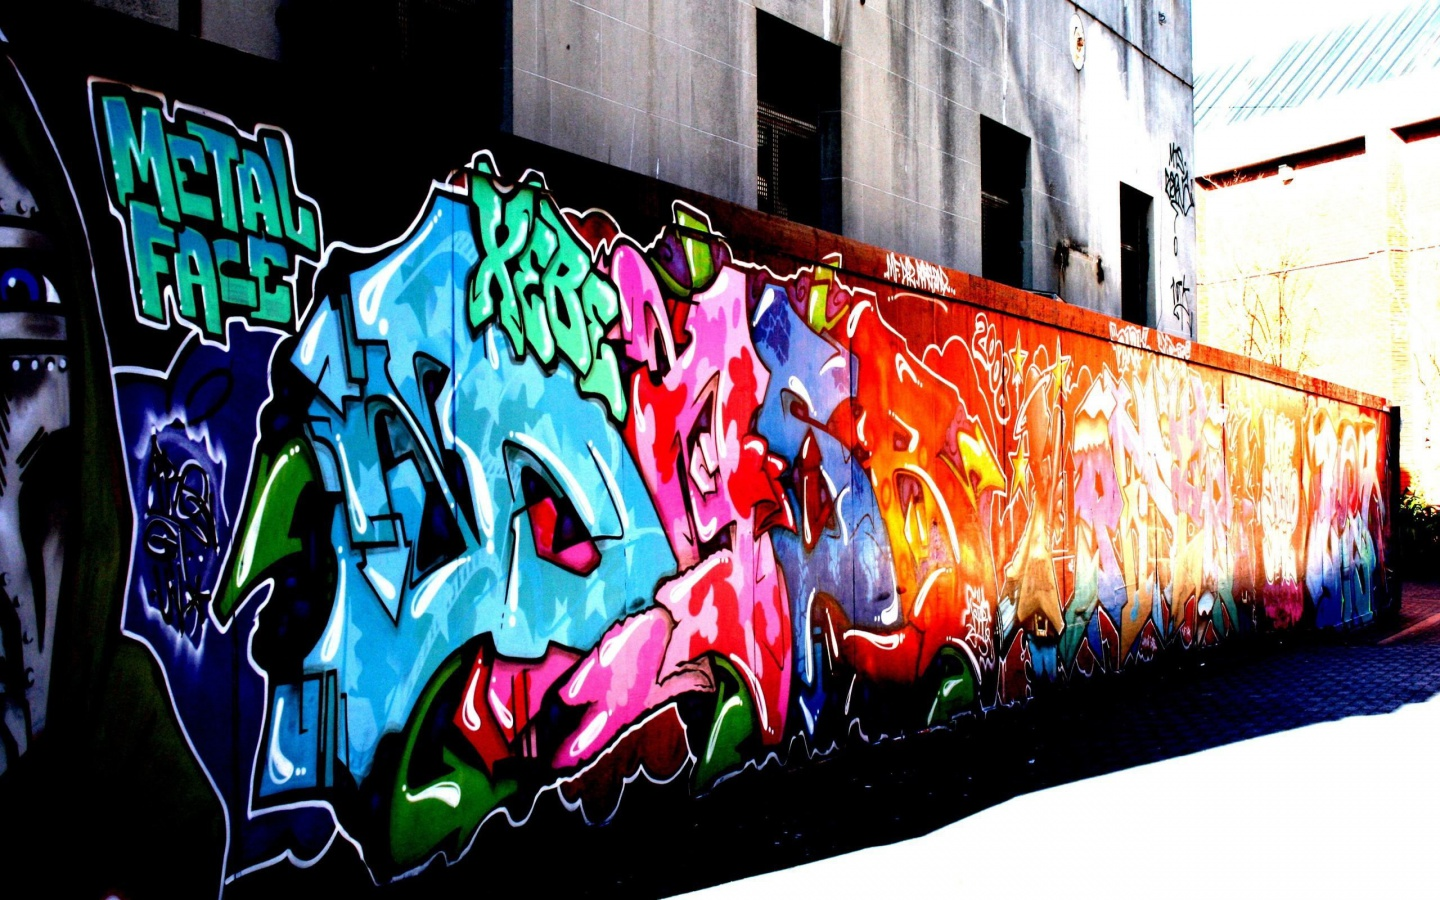 Wall-Graffiti-colors-31067200-1440-900